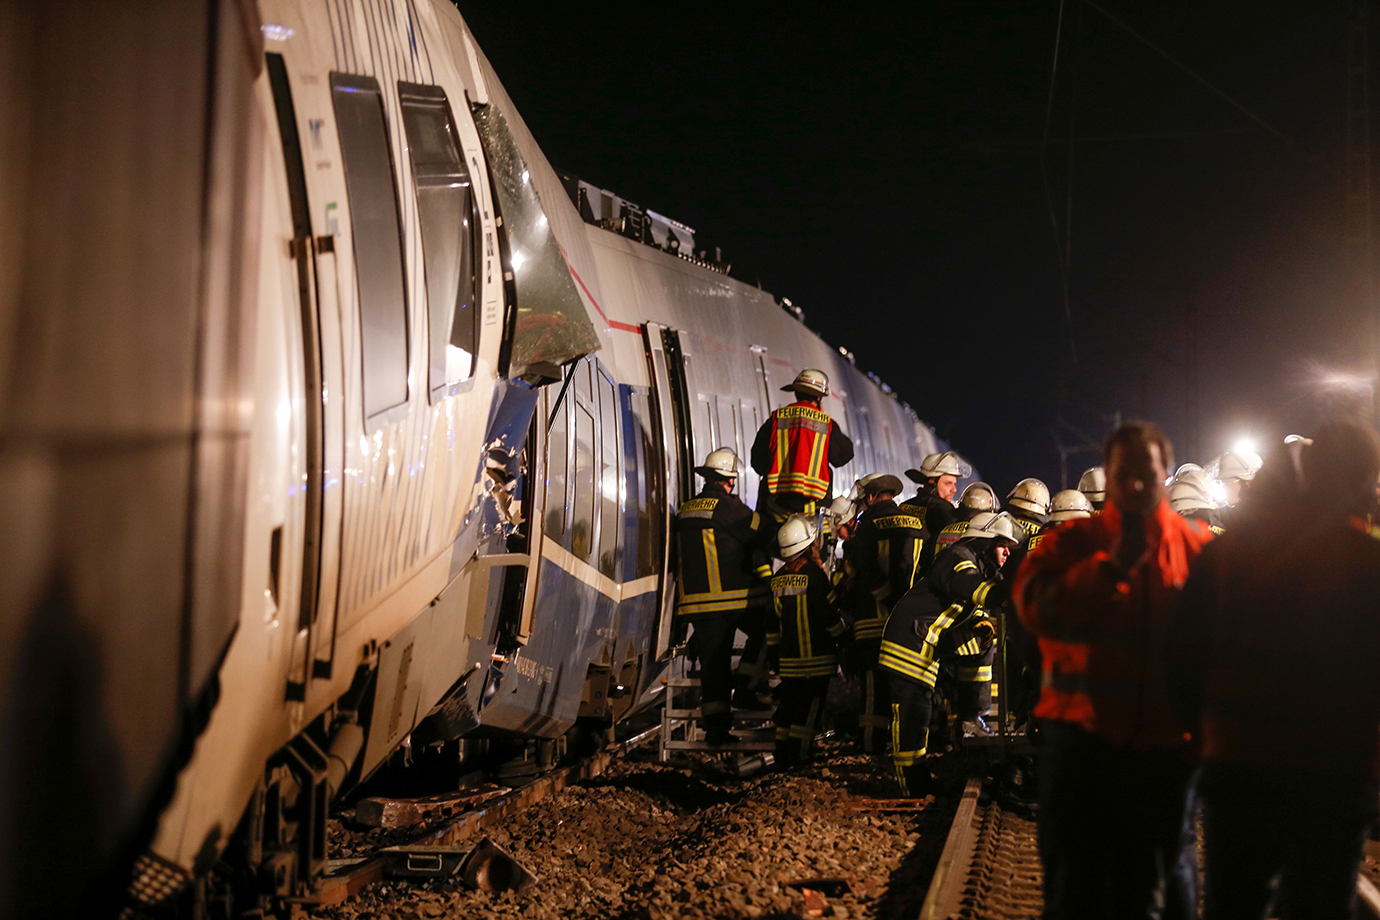 Firefighters work on the site of a train accident on December 5, 2017 in Meerbusch-Osterath, western